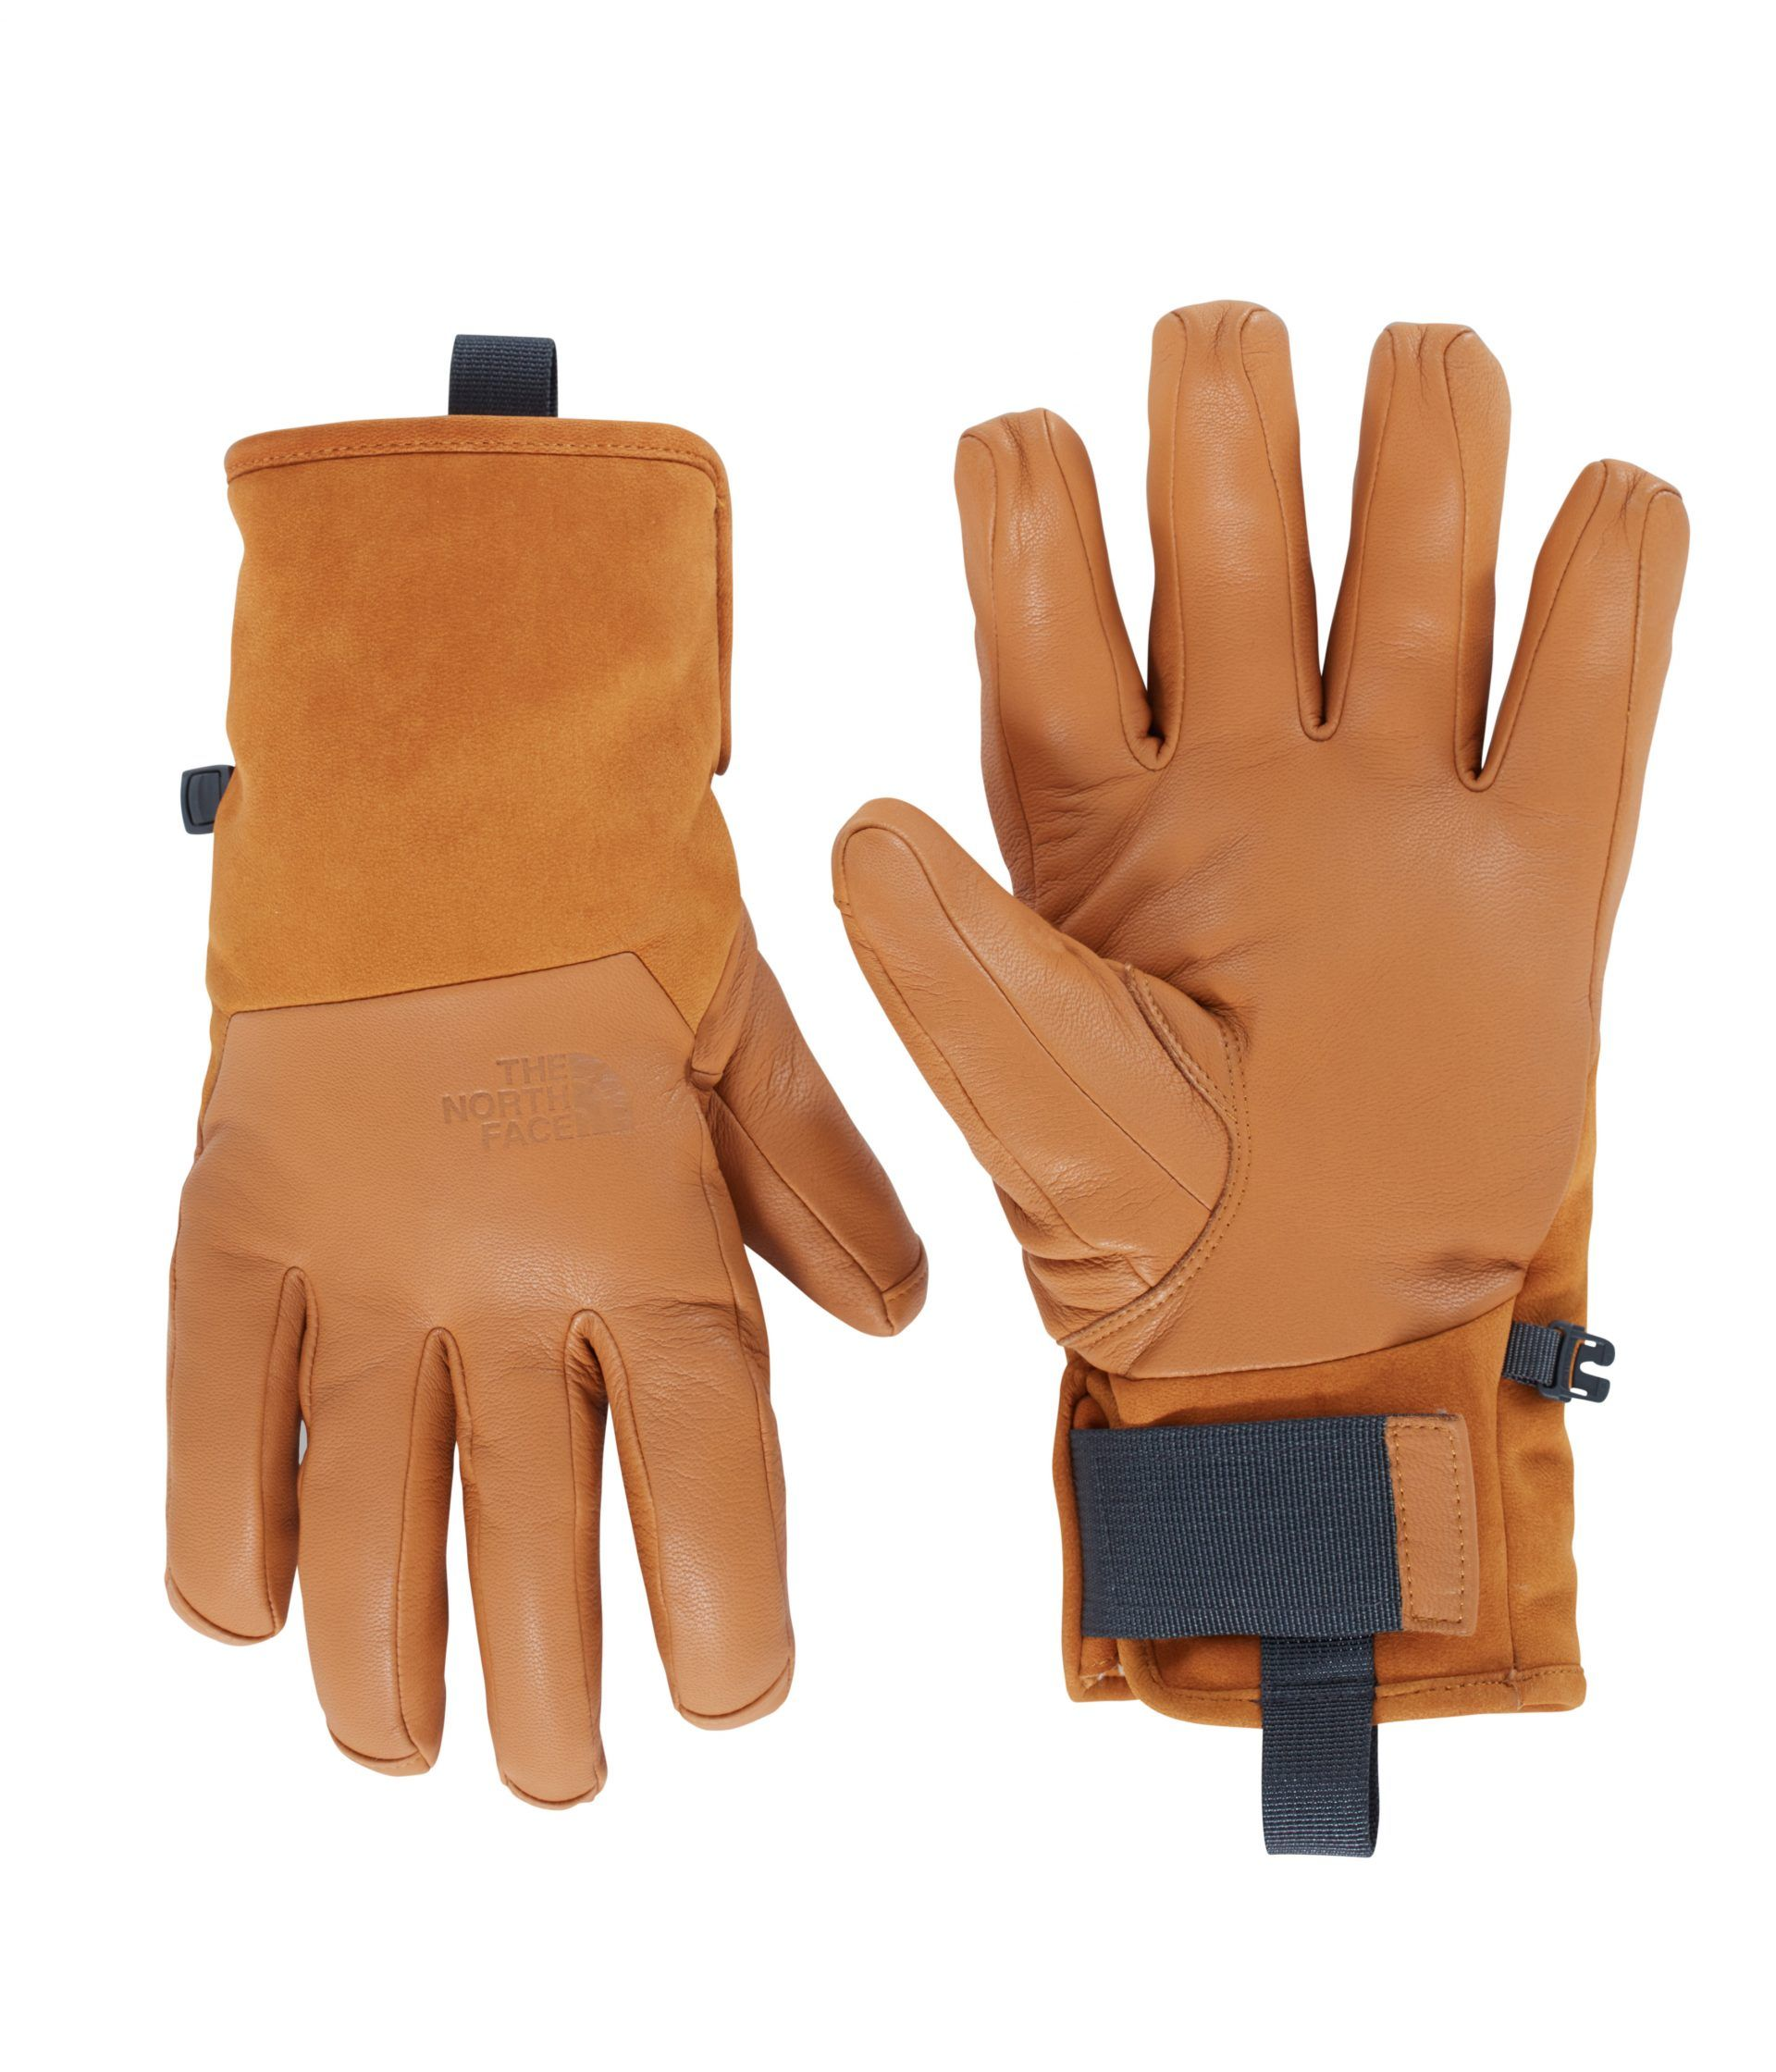 3b7ab8ff7 Leather il solo gloves | I want! | Gloves, Leather gloves, Leather